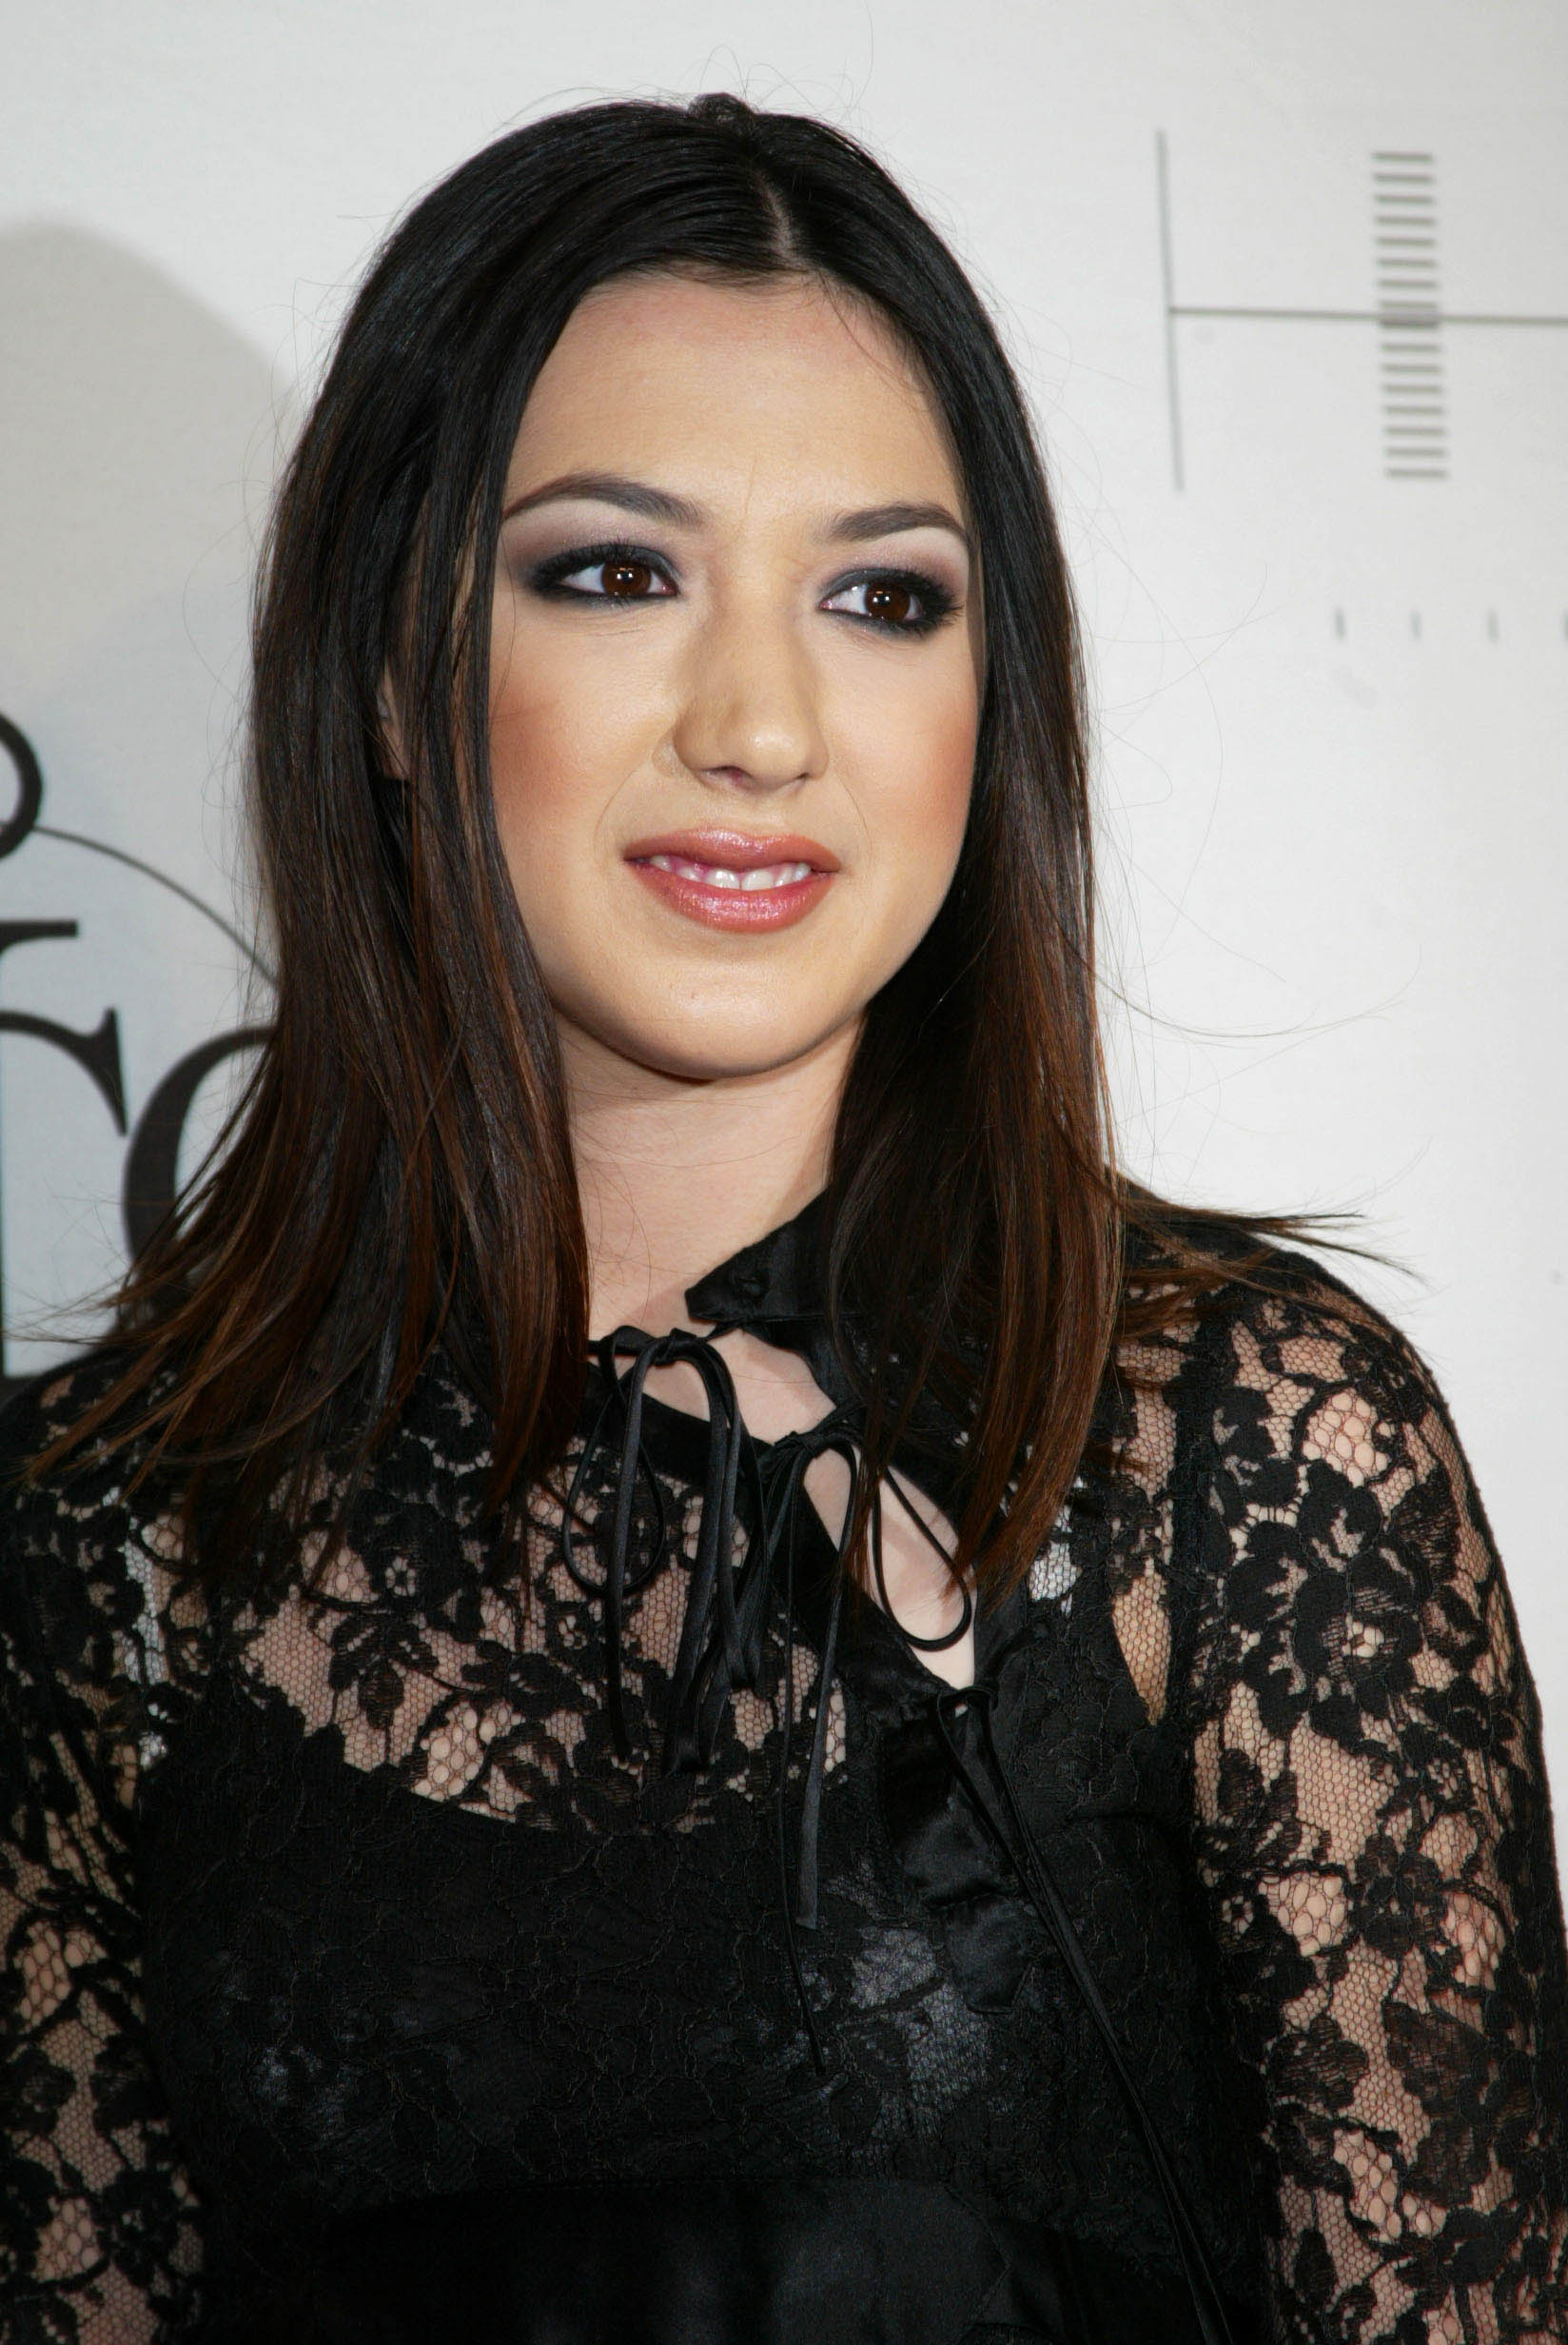 Michelle Branch photo #17629